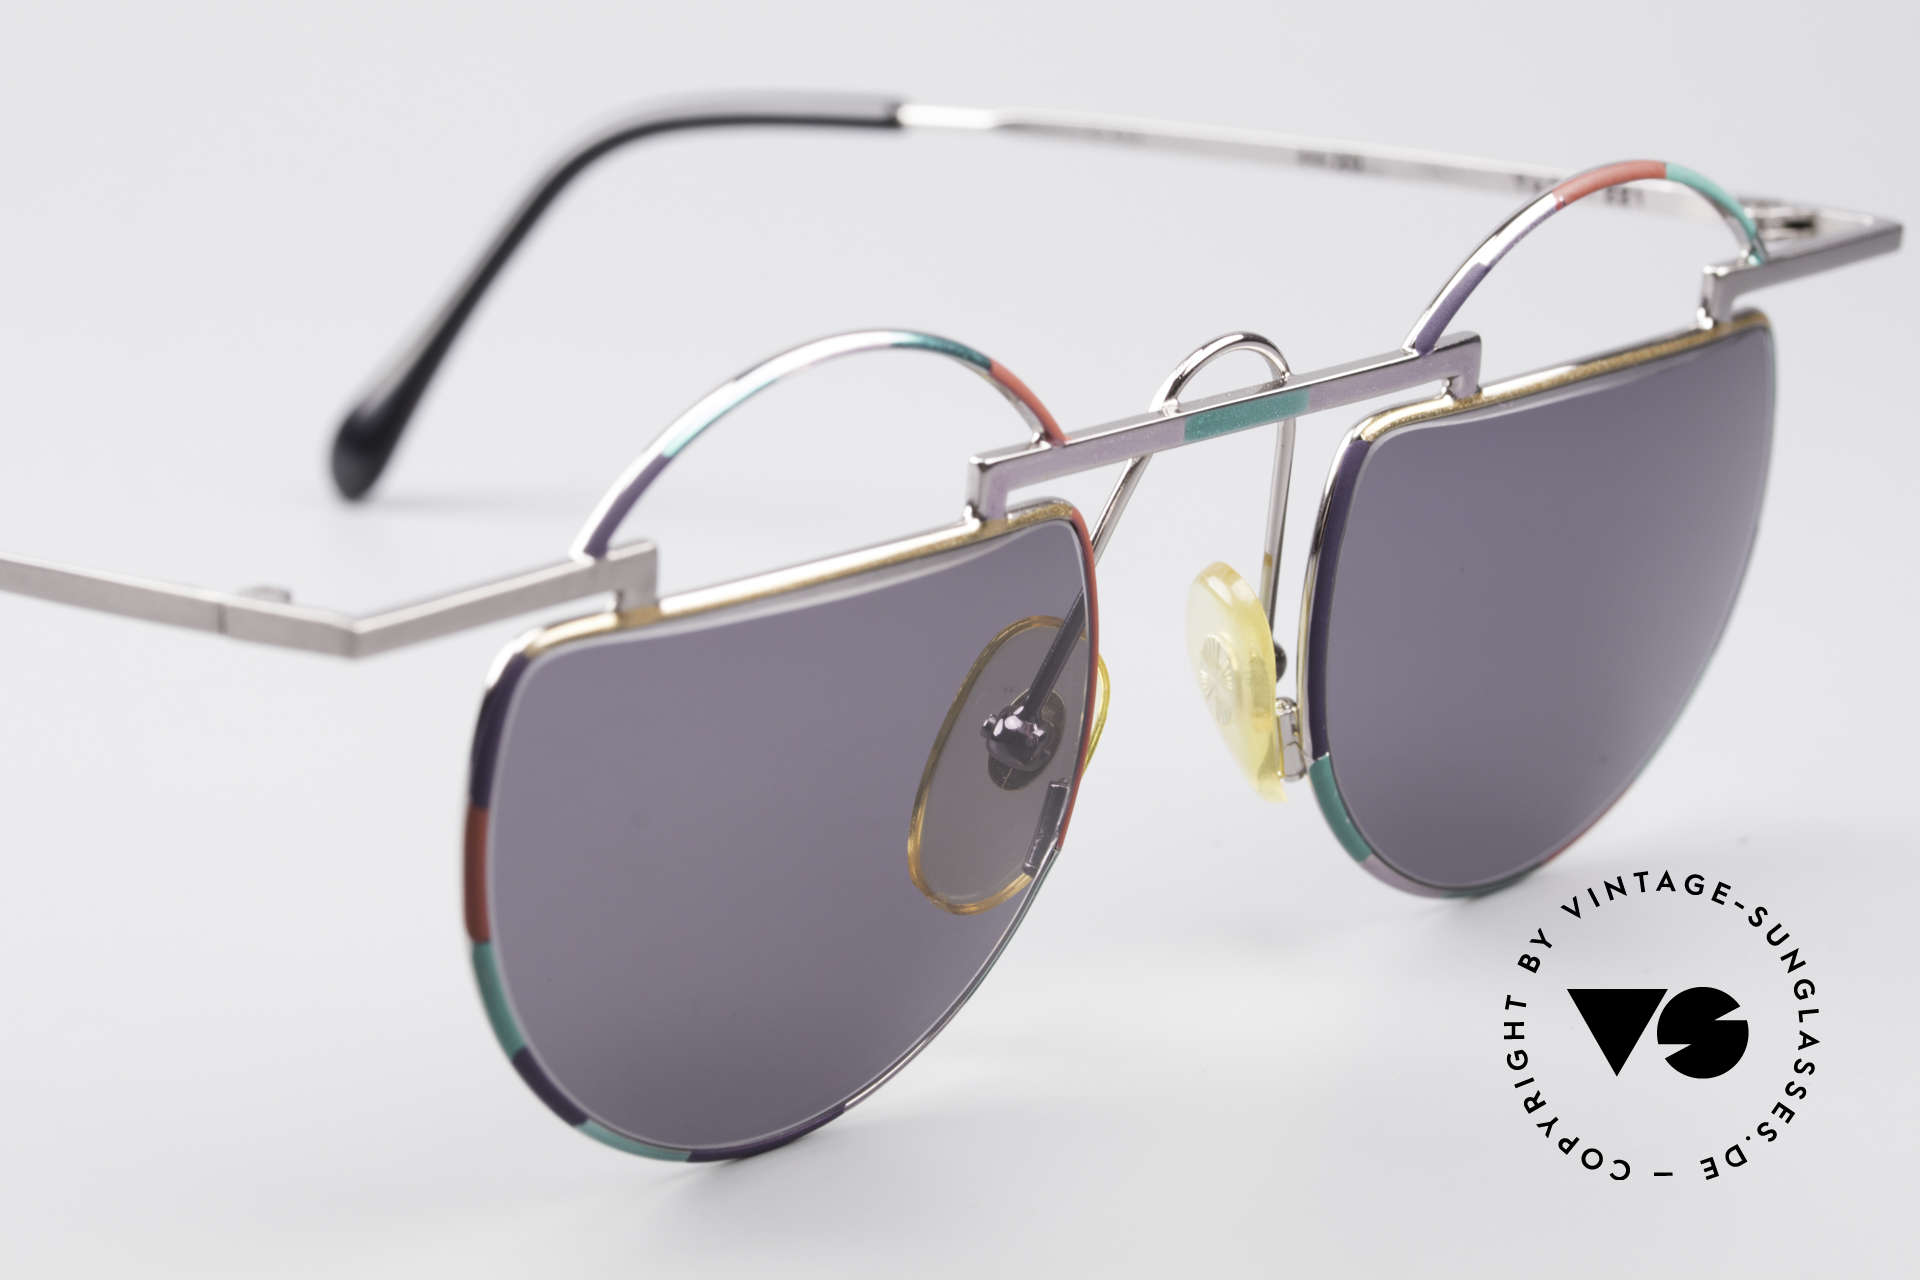 Taxi 221 by Casanova Vintage Art Sunglasses, still functional, since frame fits optical (sun) lenses, Made for Women